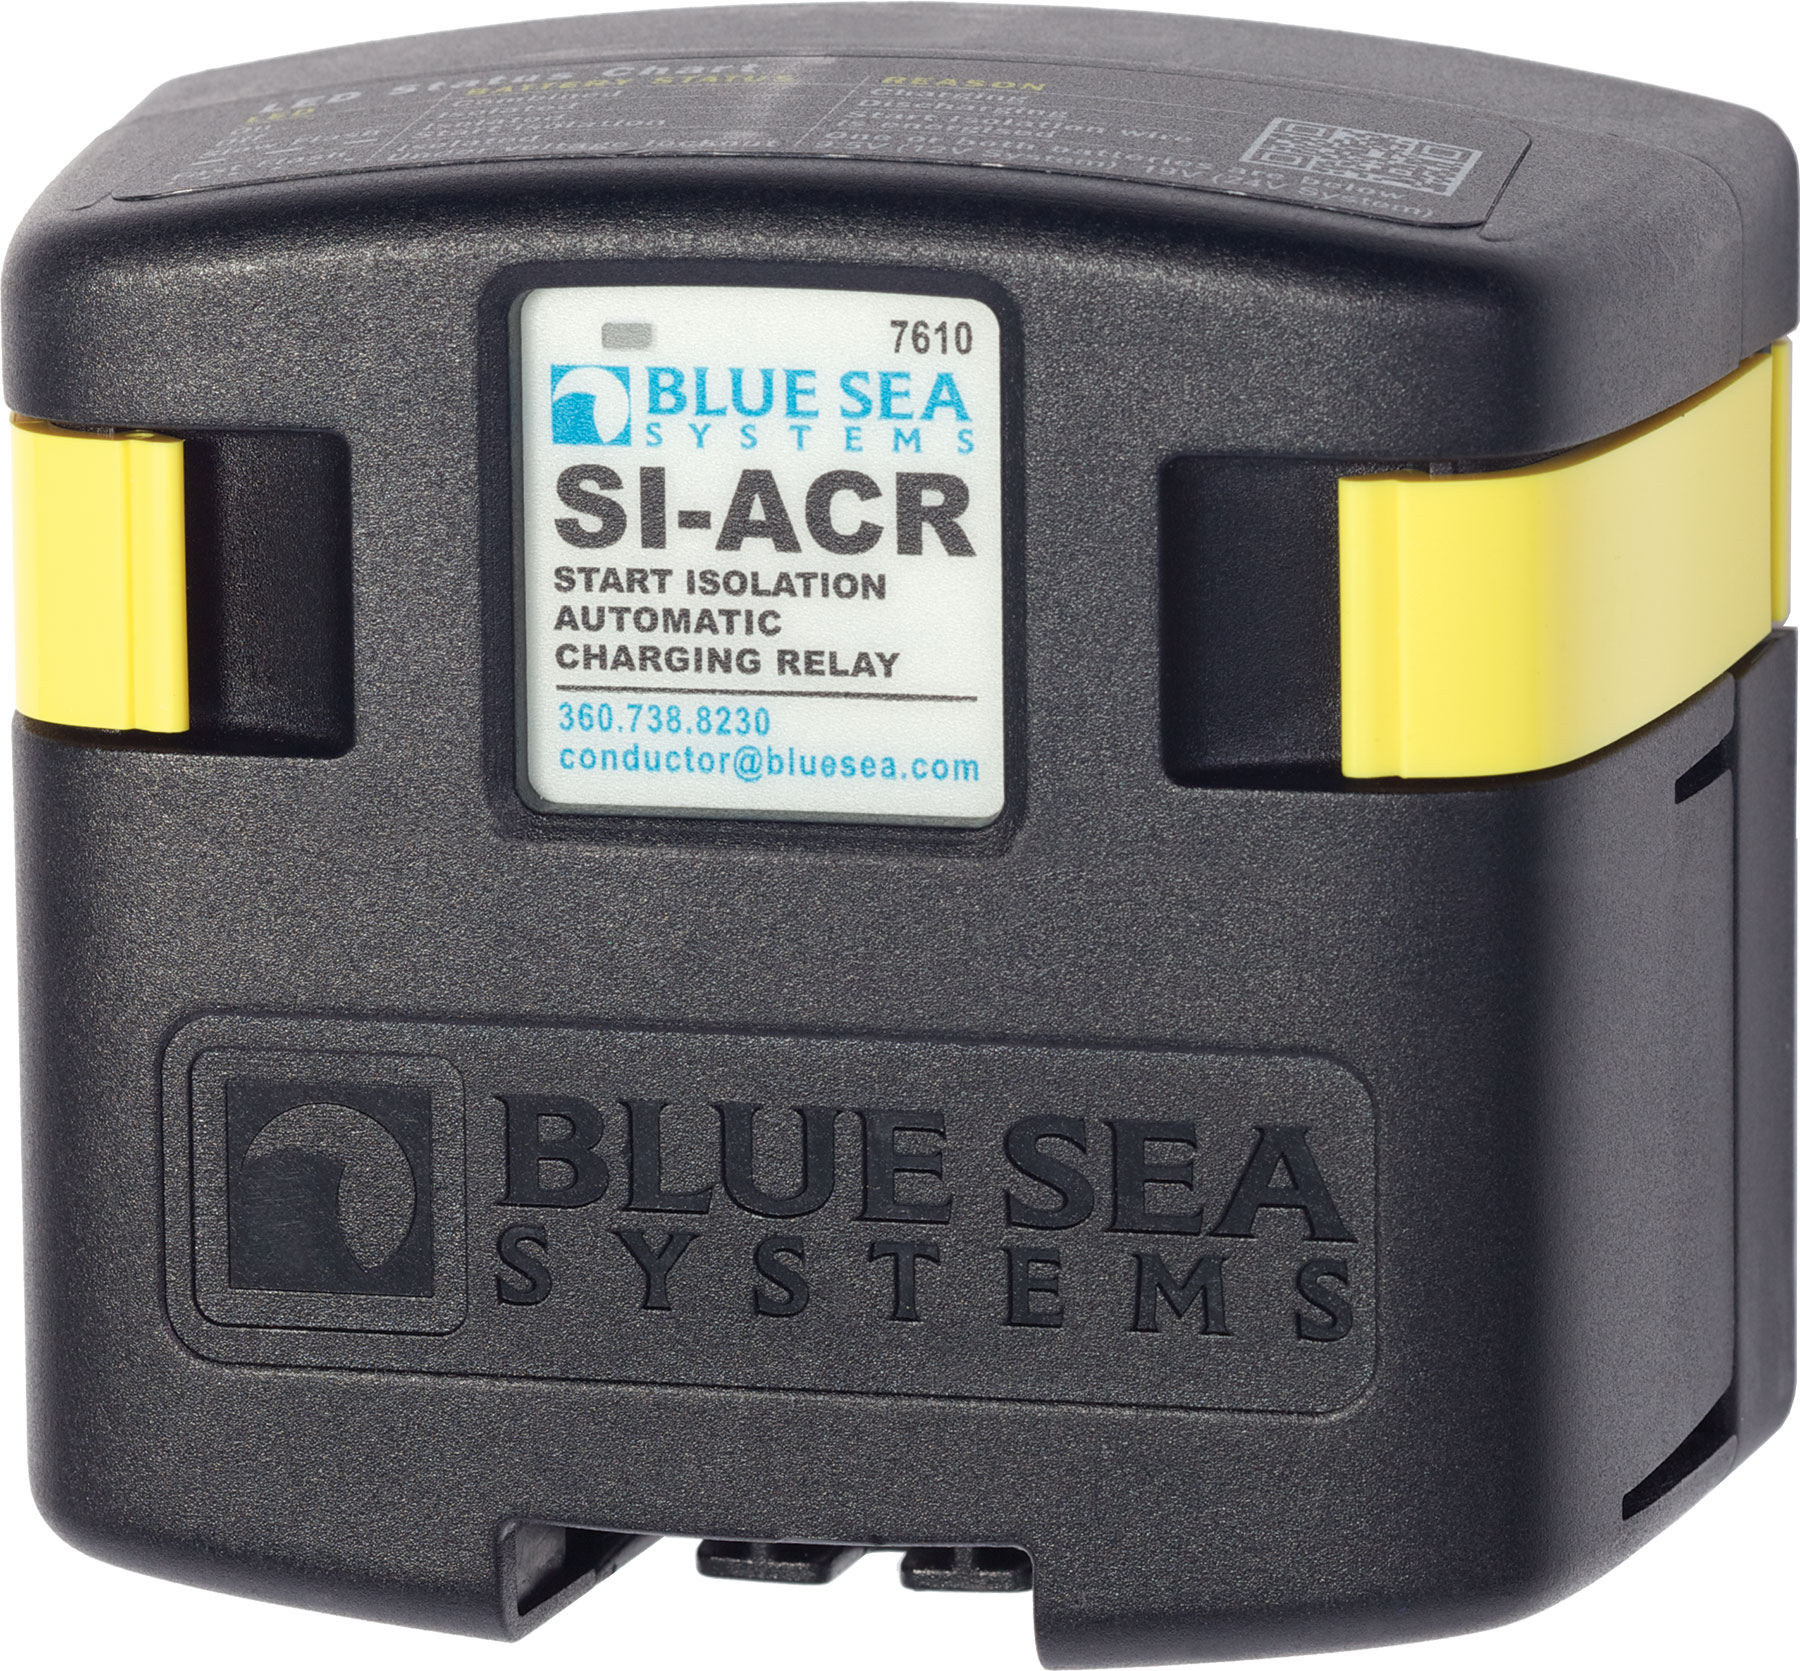 7610 si acr automatic charging relay 12 24v dc 120a blue sea systems blue sea si acr wiring diagram at n-0.co